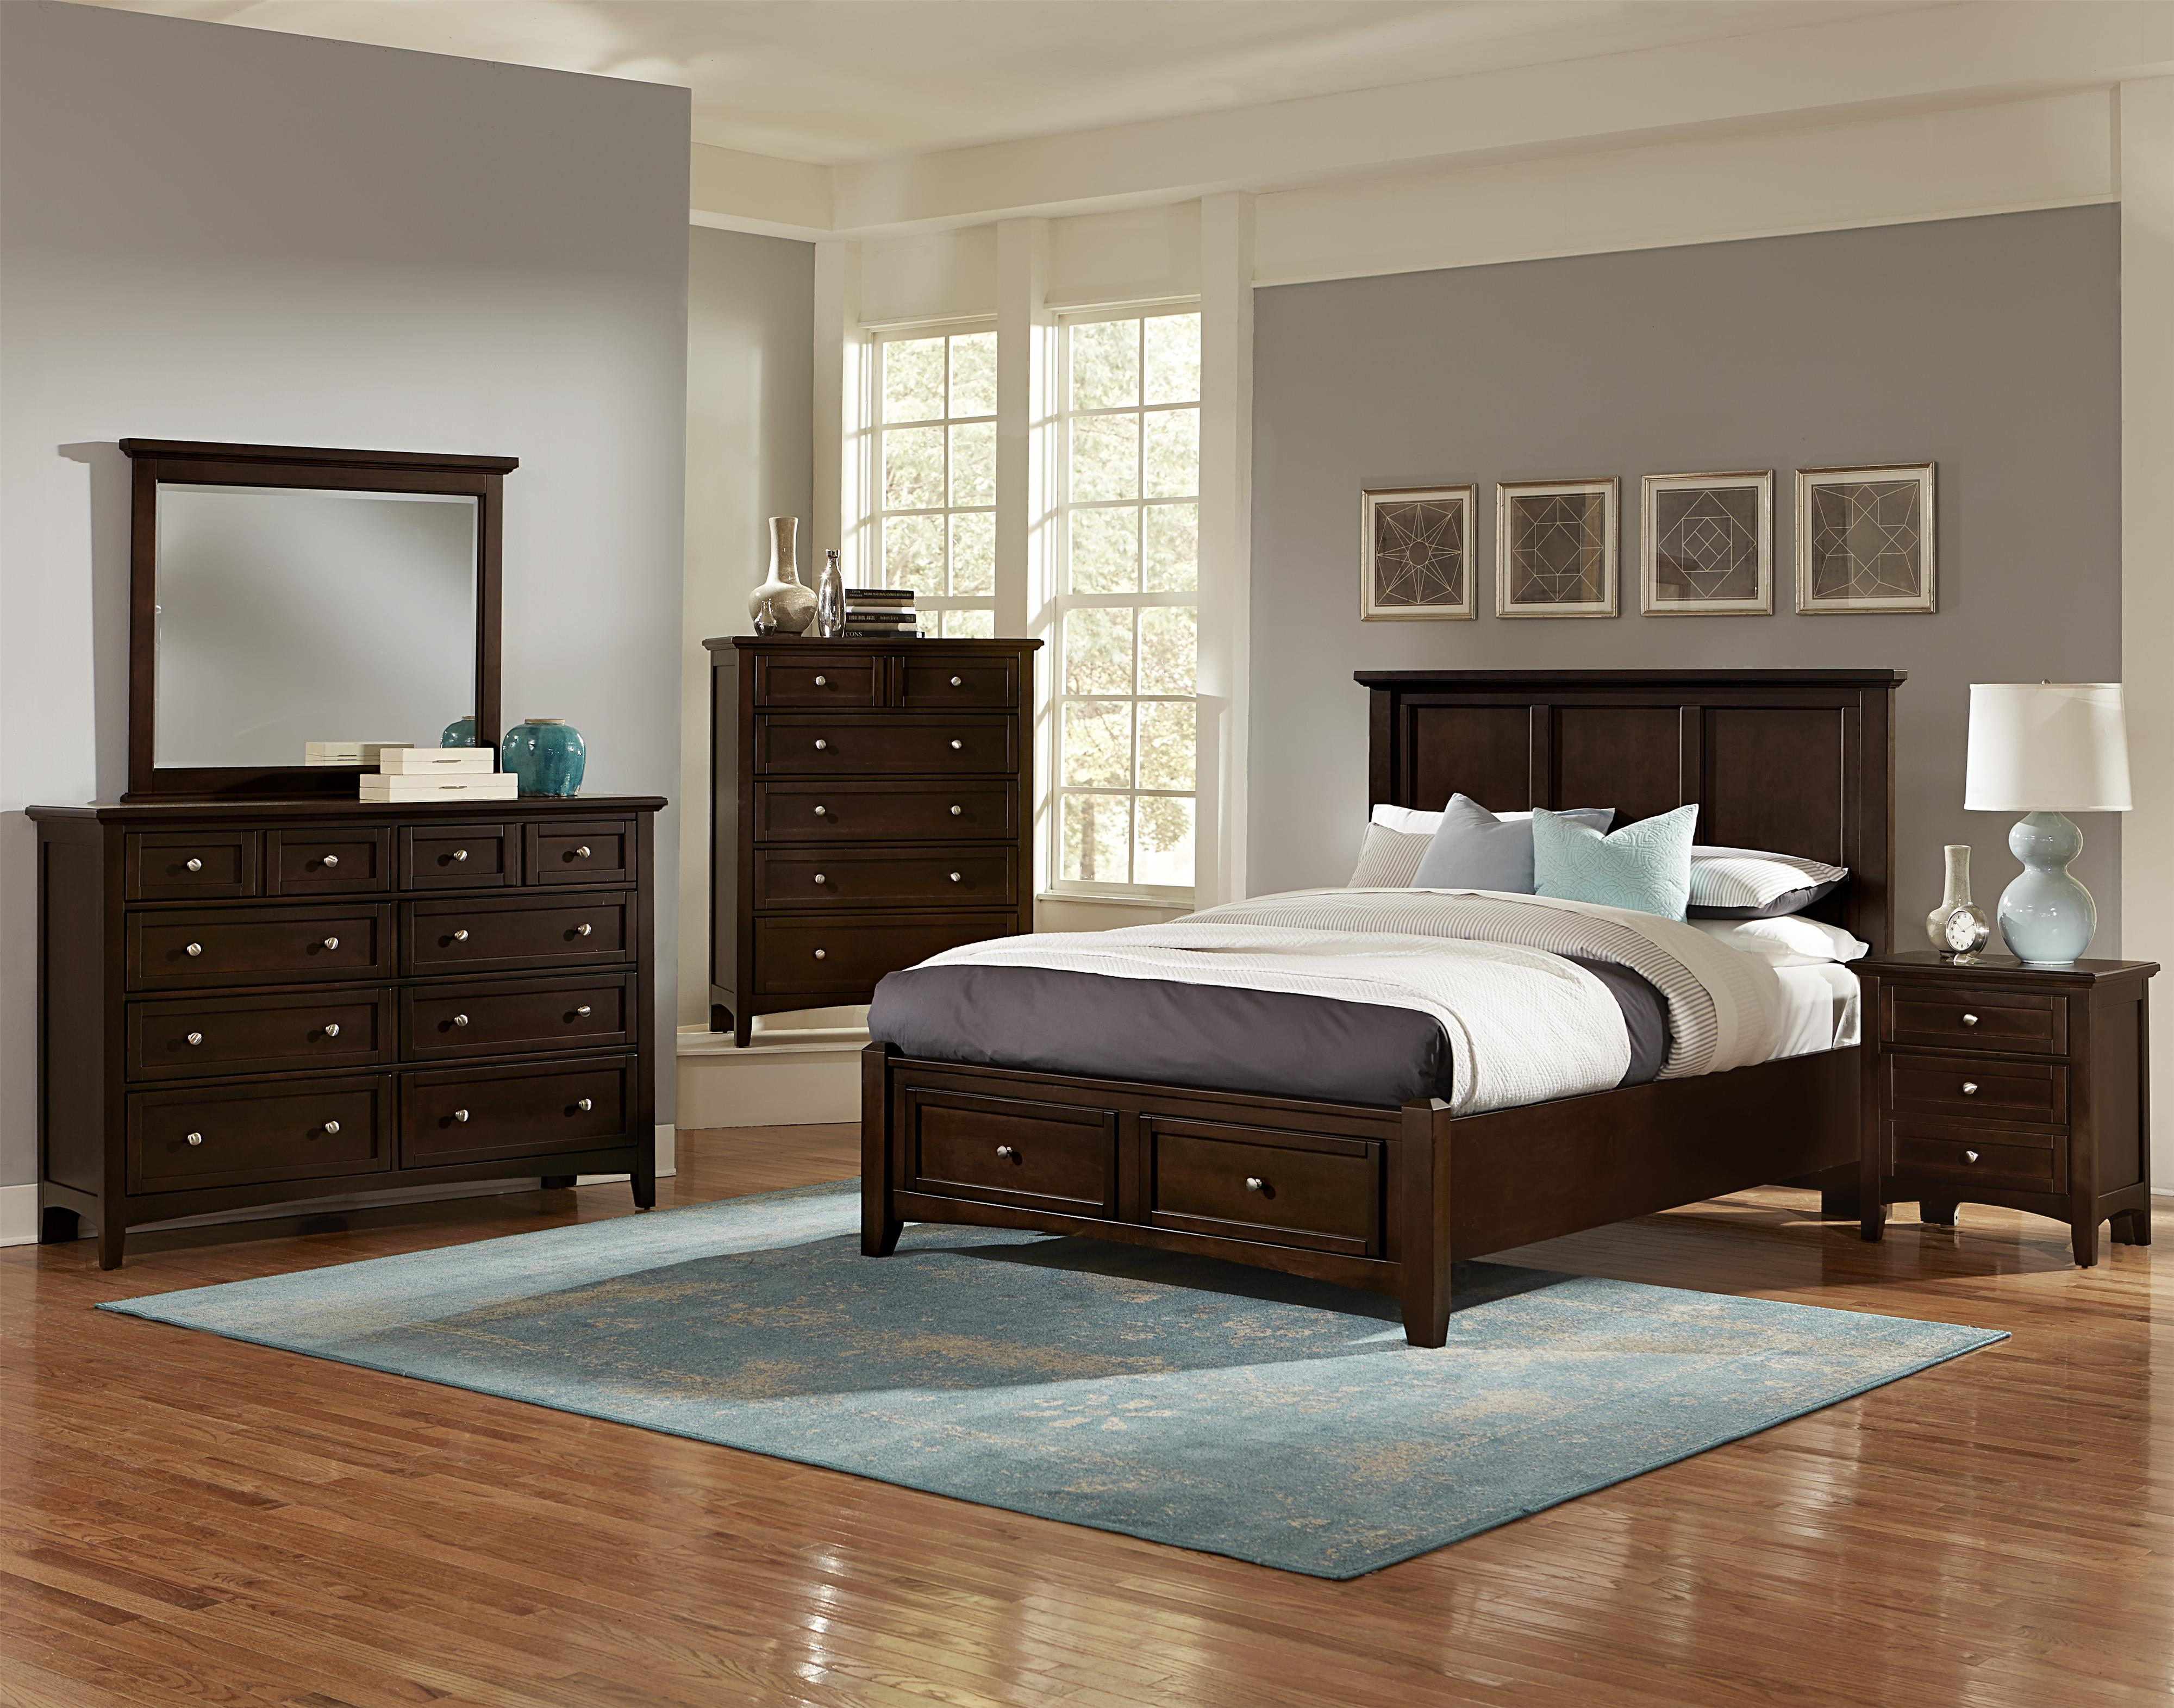 Vaughan Bassett Bonanza Full Bedroom Group - Item Number: BB27 F Bedroom Group 3